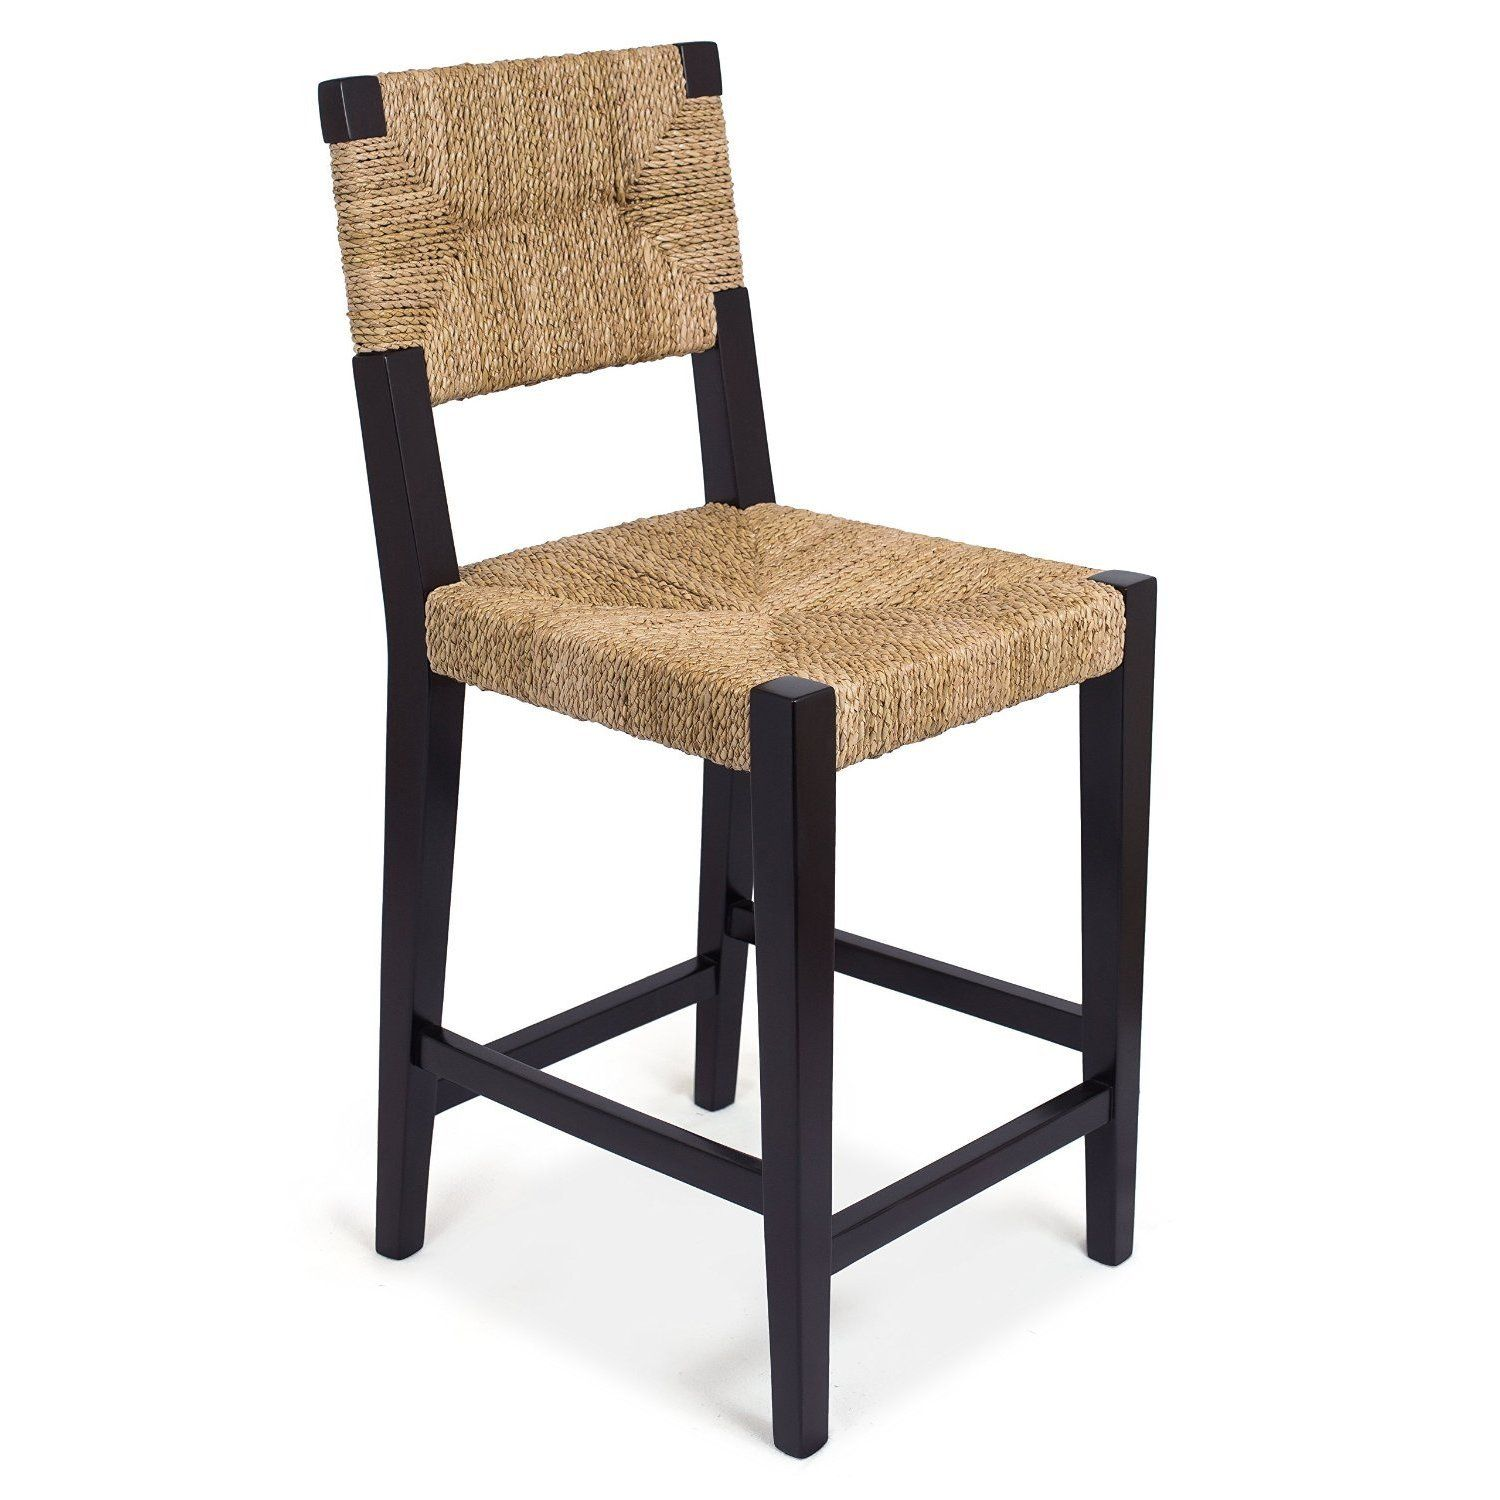 Birdrock Home Rush Weave Counter Stool With Back 24 Inch Height Woven Counterhieght